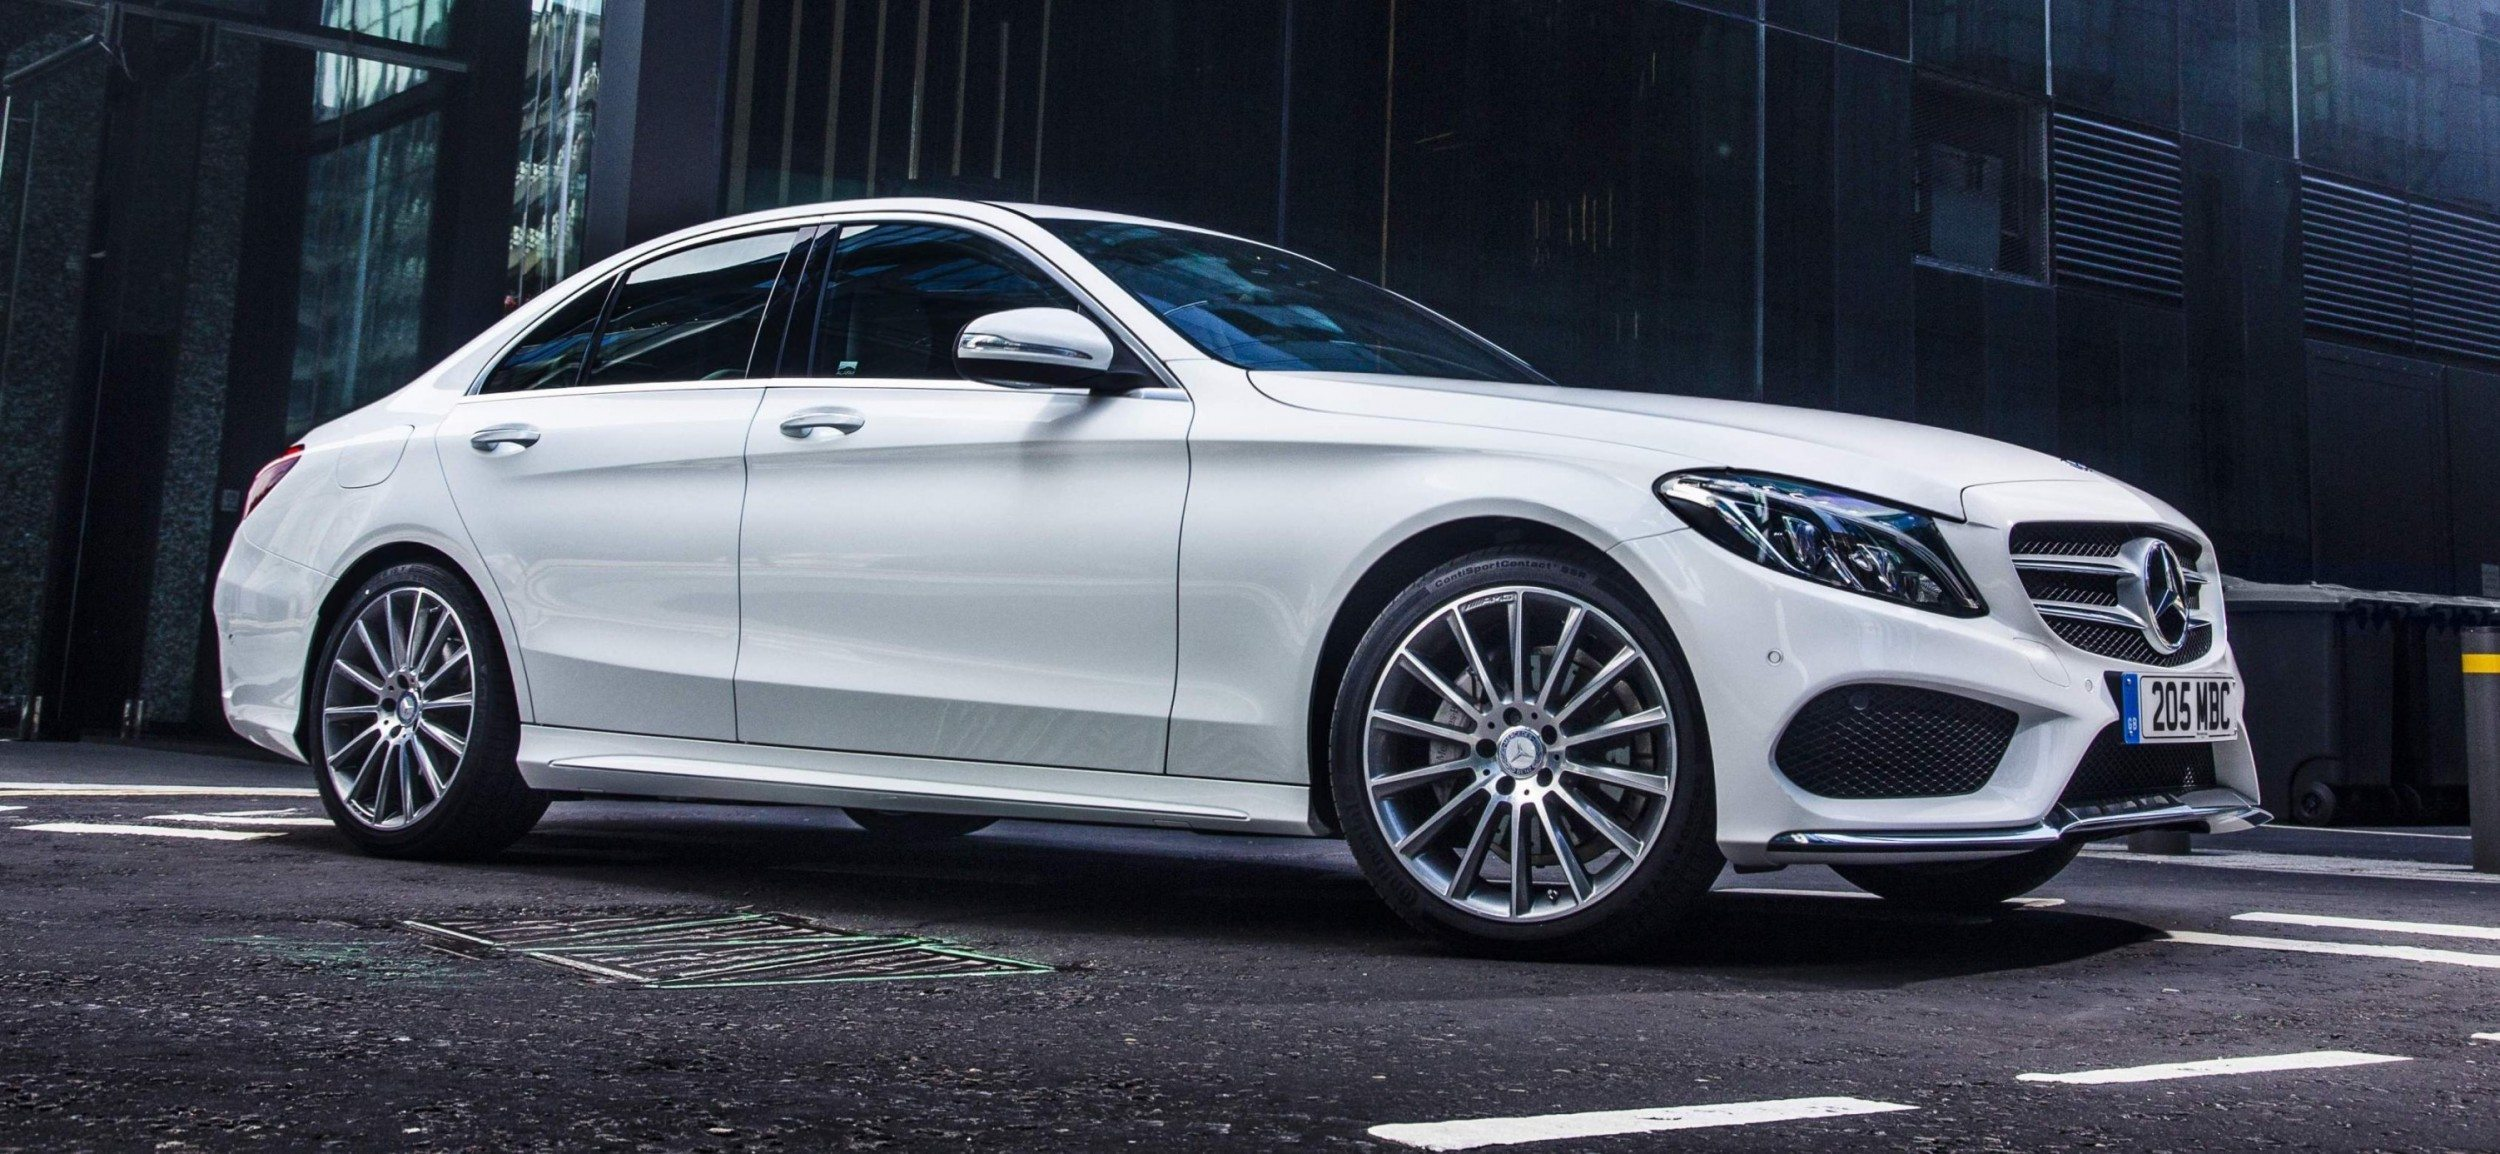 2015 mercedes benz c class in 40 new photos from london for 2015 c300 mercedes benz